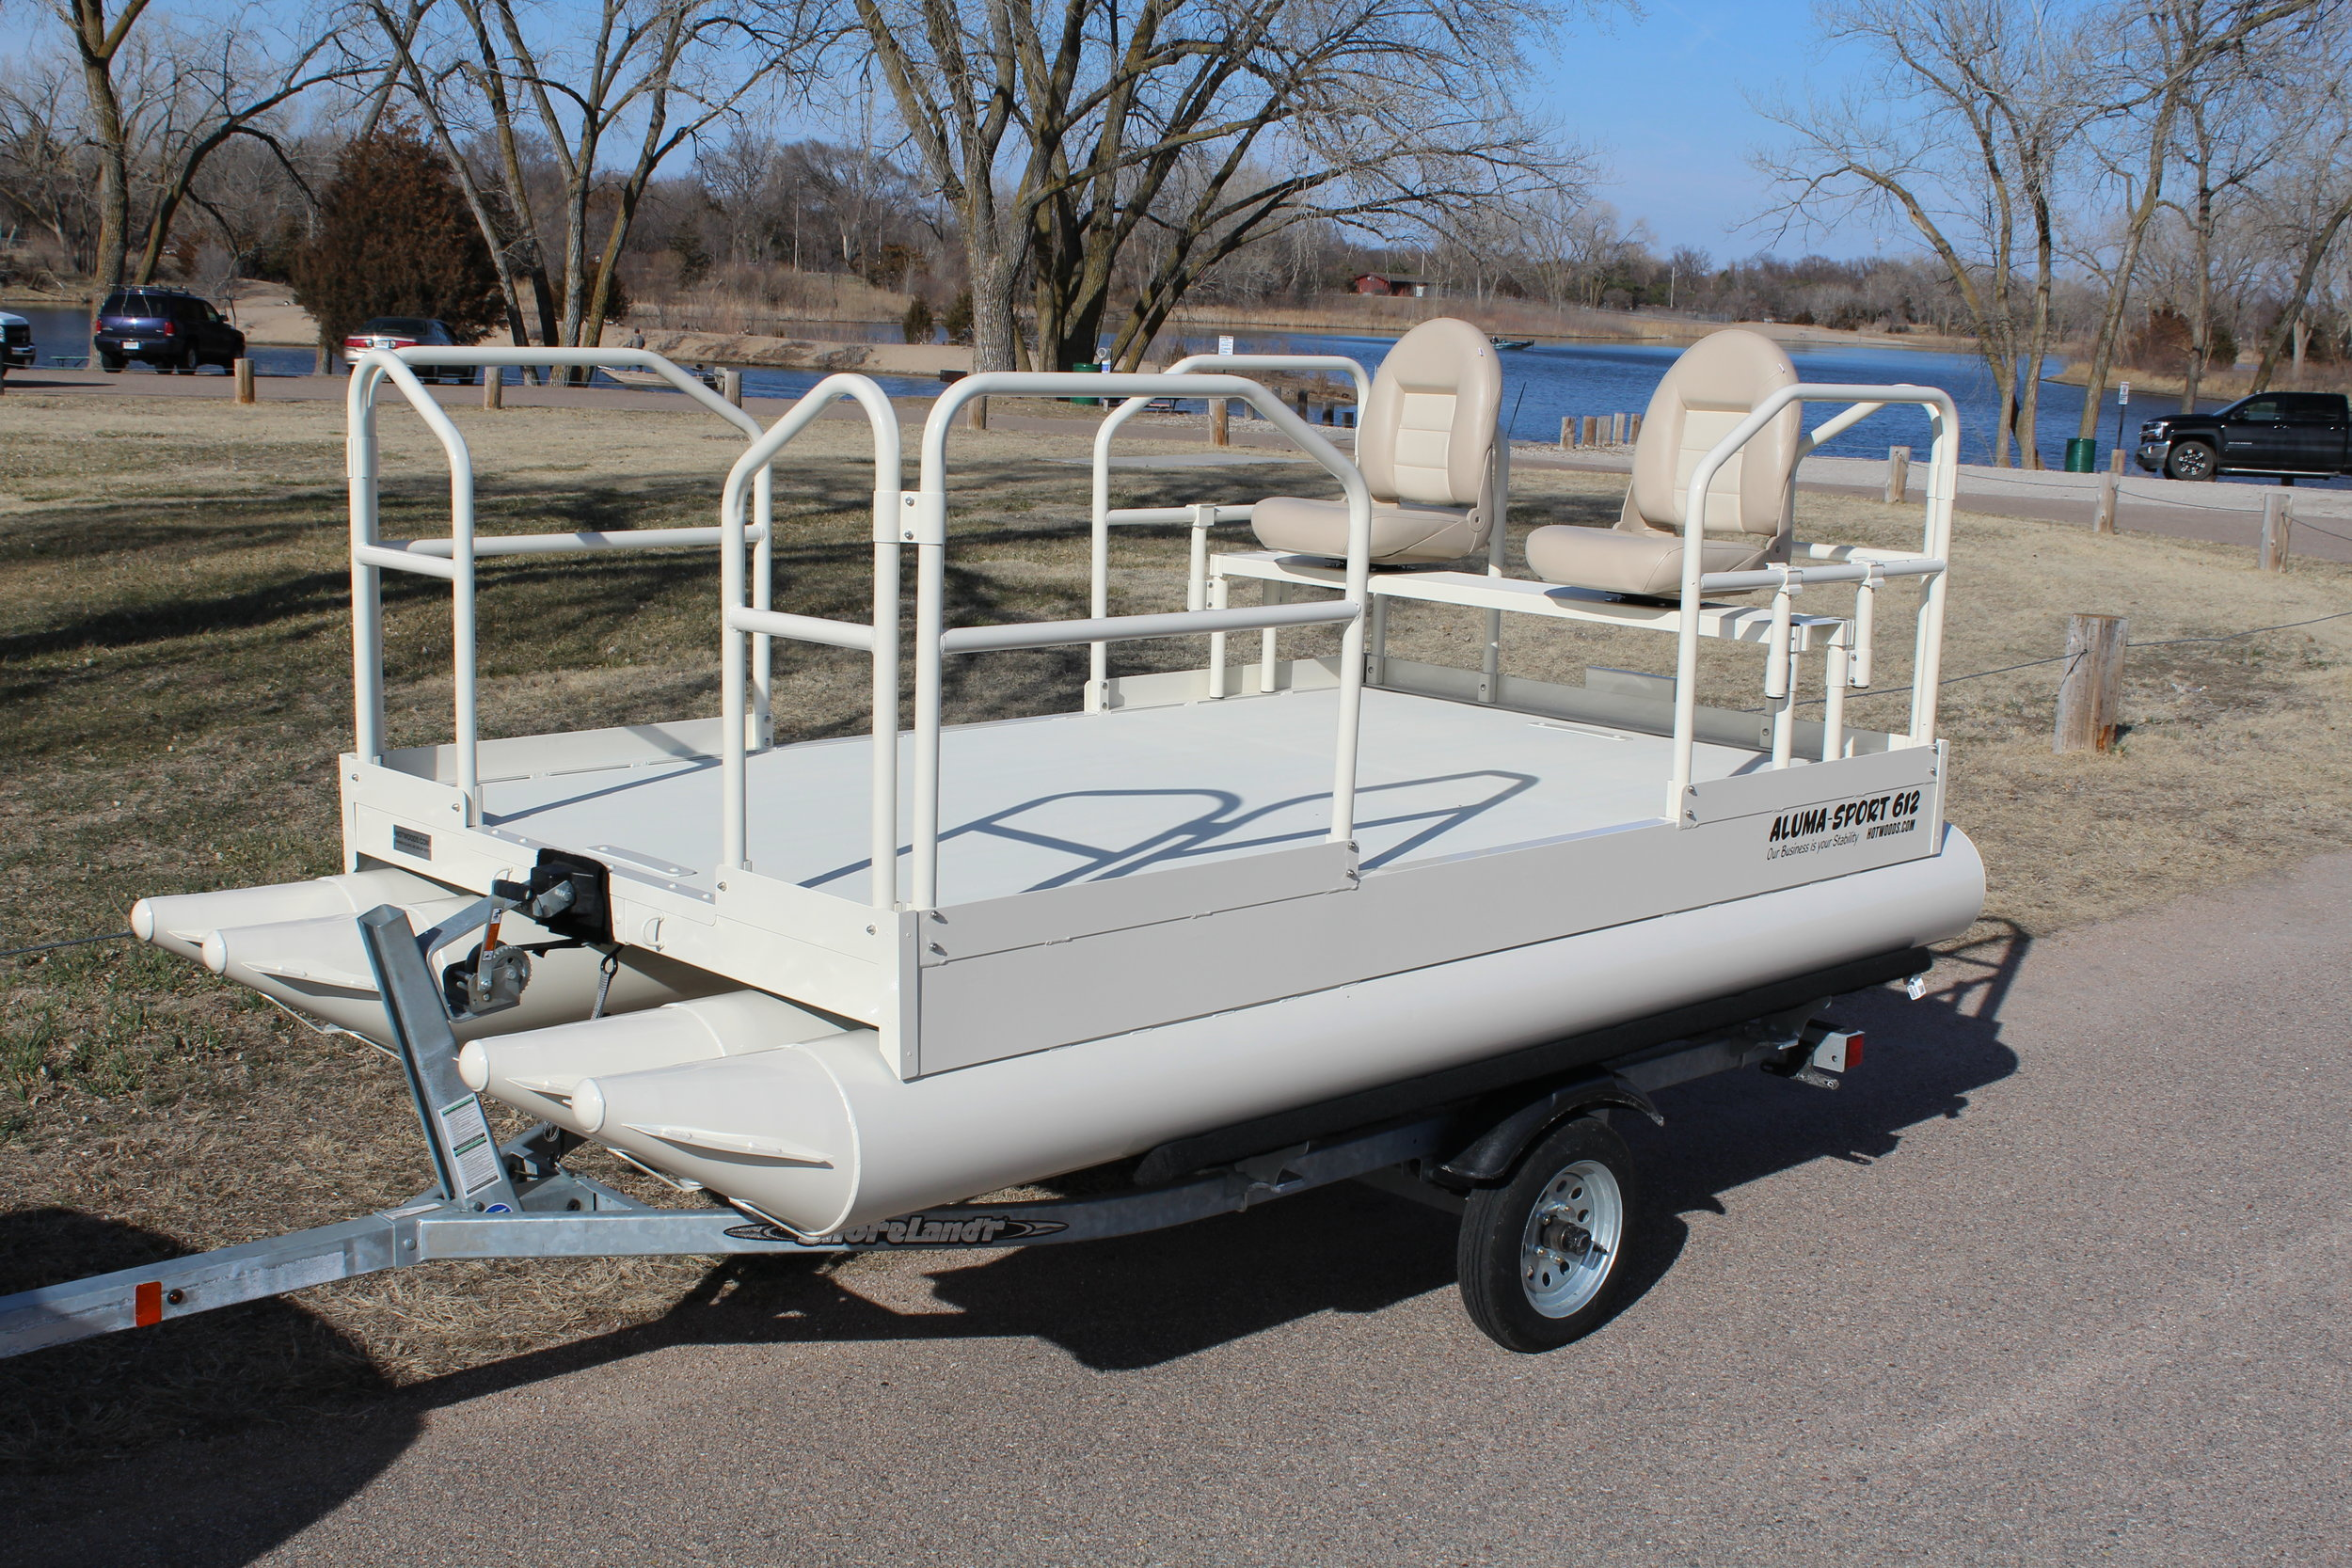 """612 Aluma Sport shown in custom color, Cedar Rapids White. This customer added the optional 34"""" handrails all around and the up graded folding seats.  Hotwoods offers premium powder coating to all out pontoon models except the 716 Aluma Sport. This color was a custom color that we normally do not offer, but was requested by this customer. Hotwoods filled the wish to give the customer exactly what they wanted. It is a very creamy white that is a real hit with everyone that has seen it so far.  Customers ask, what is the price difference of a custom color? The answer to that is, there is an up charge for premium powder coating and it can vary depending on color. Remember, we will always go that extra mile to give you what you want and at the same time, doing it the most economical way possible, for you the customer."""